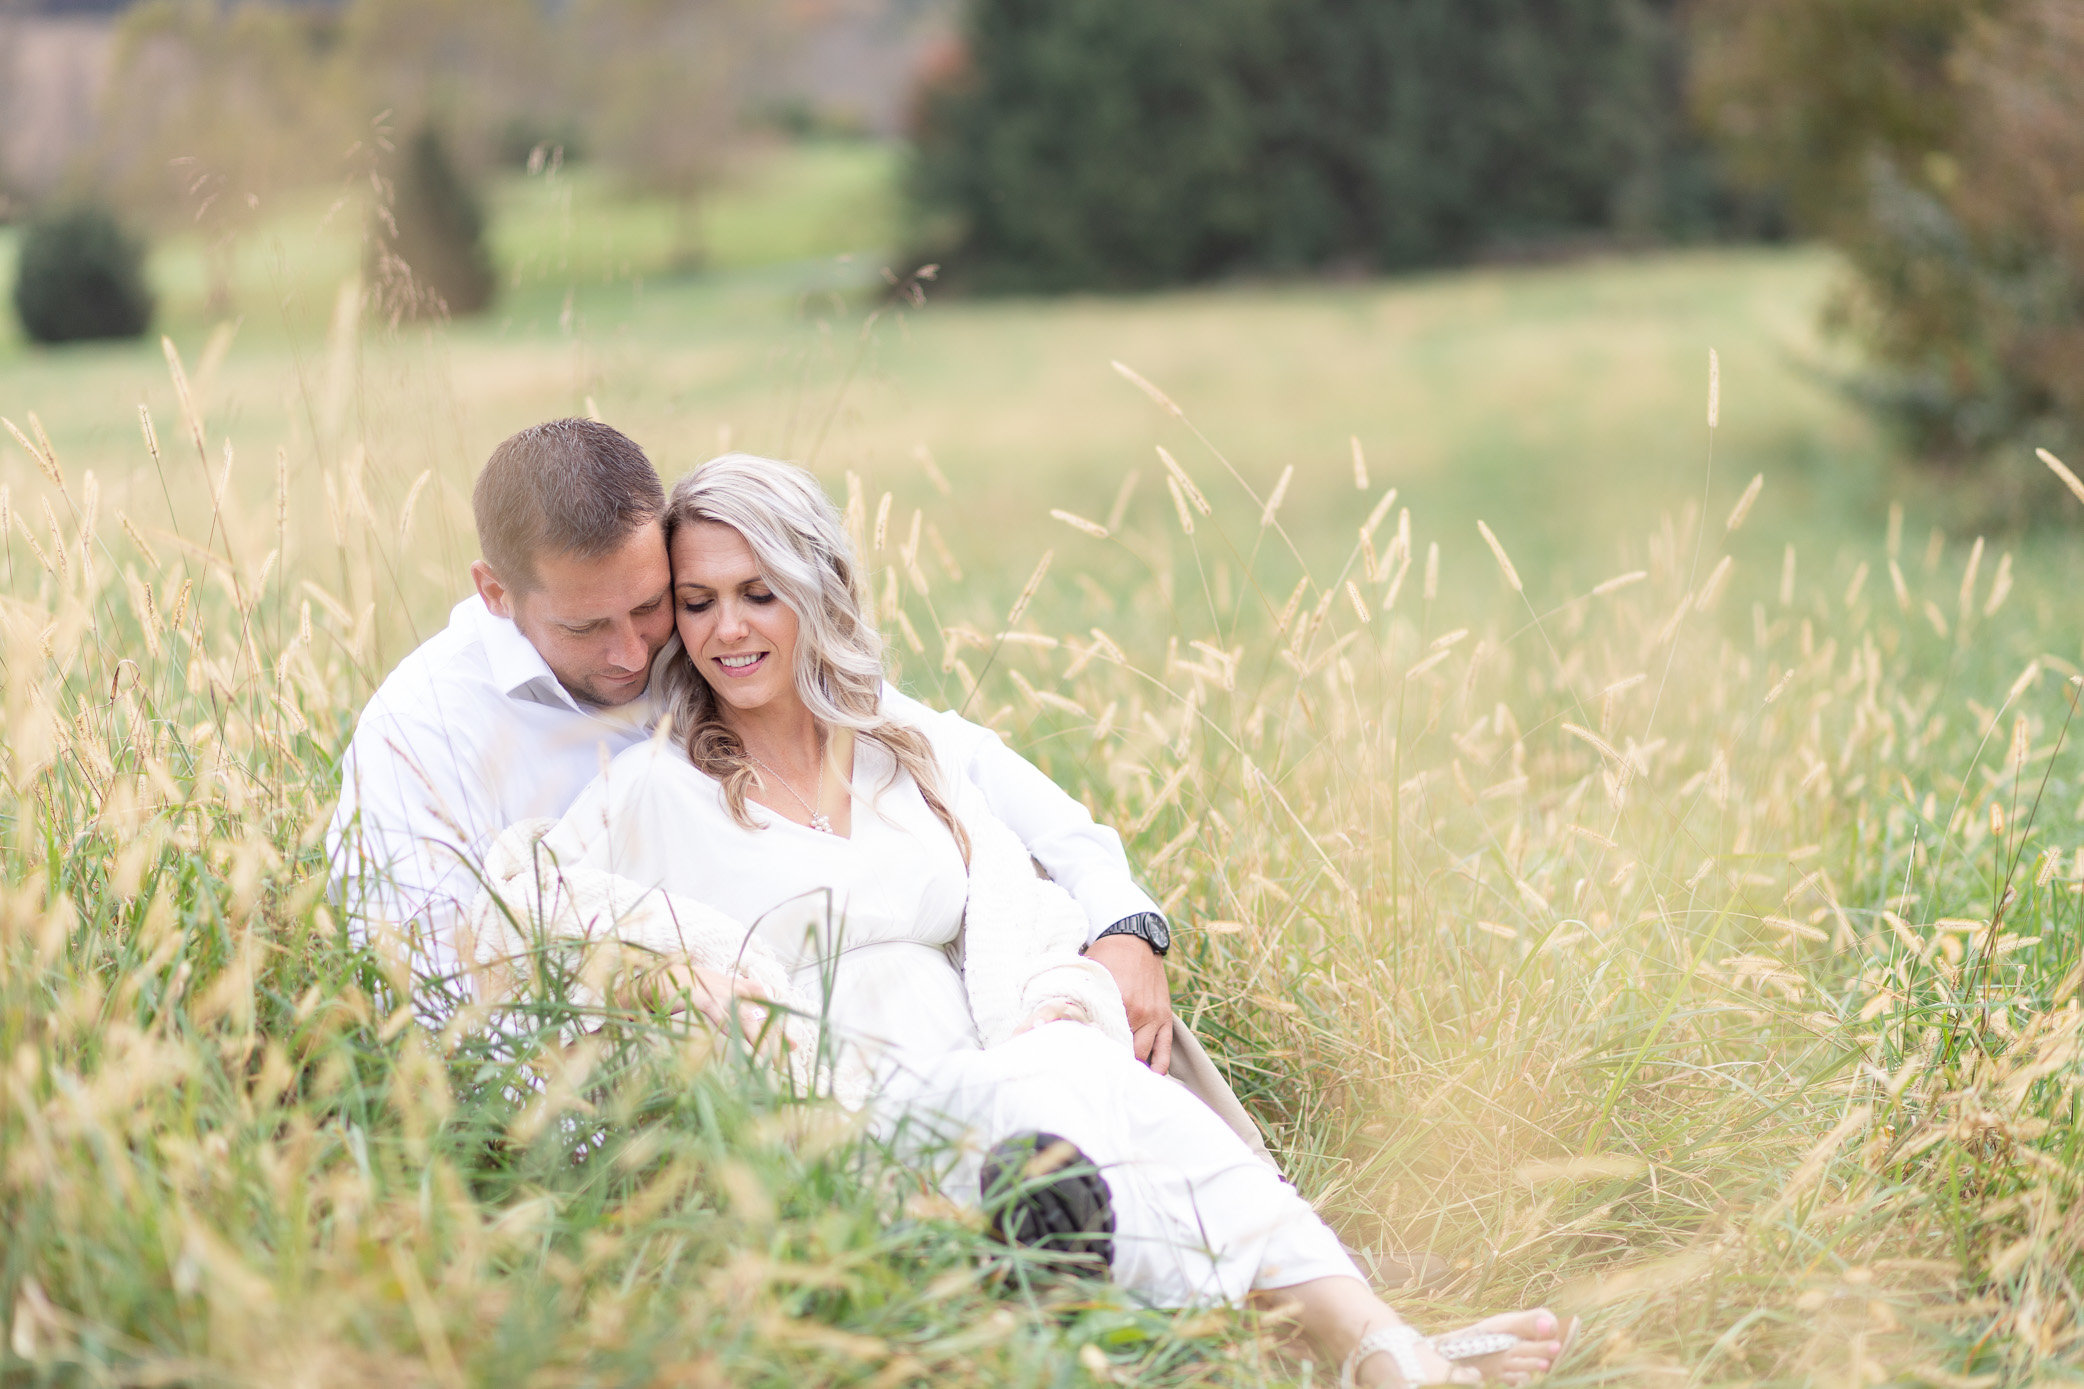 Rebecca and Scott sitting in a field of golden grass